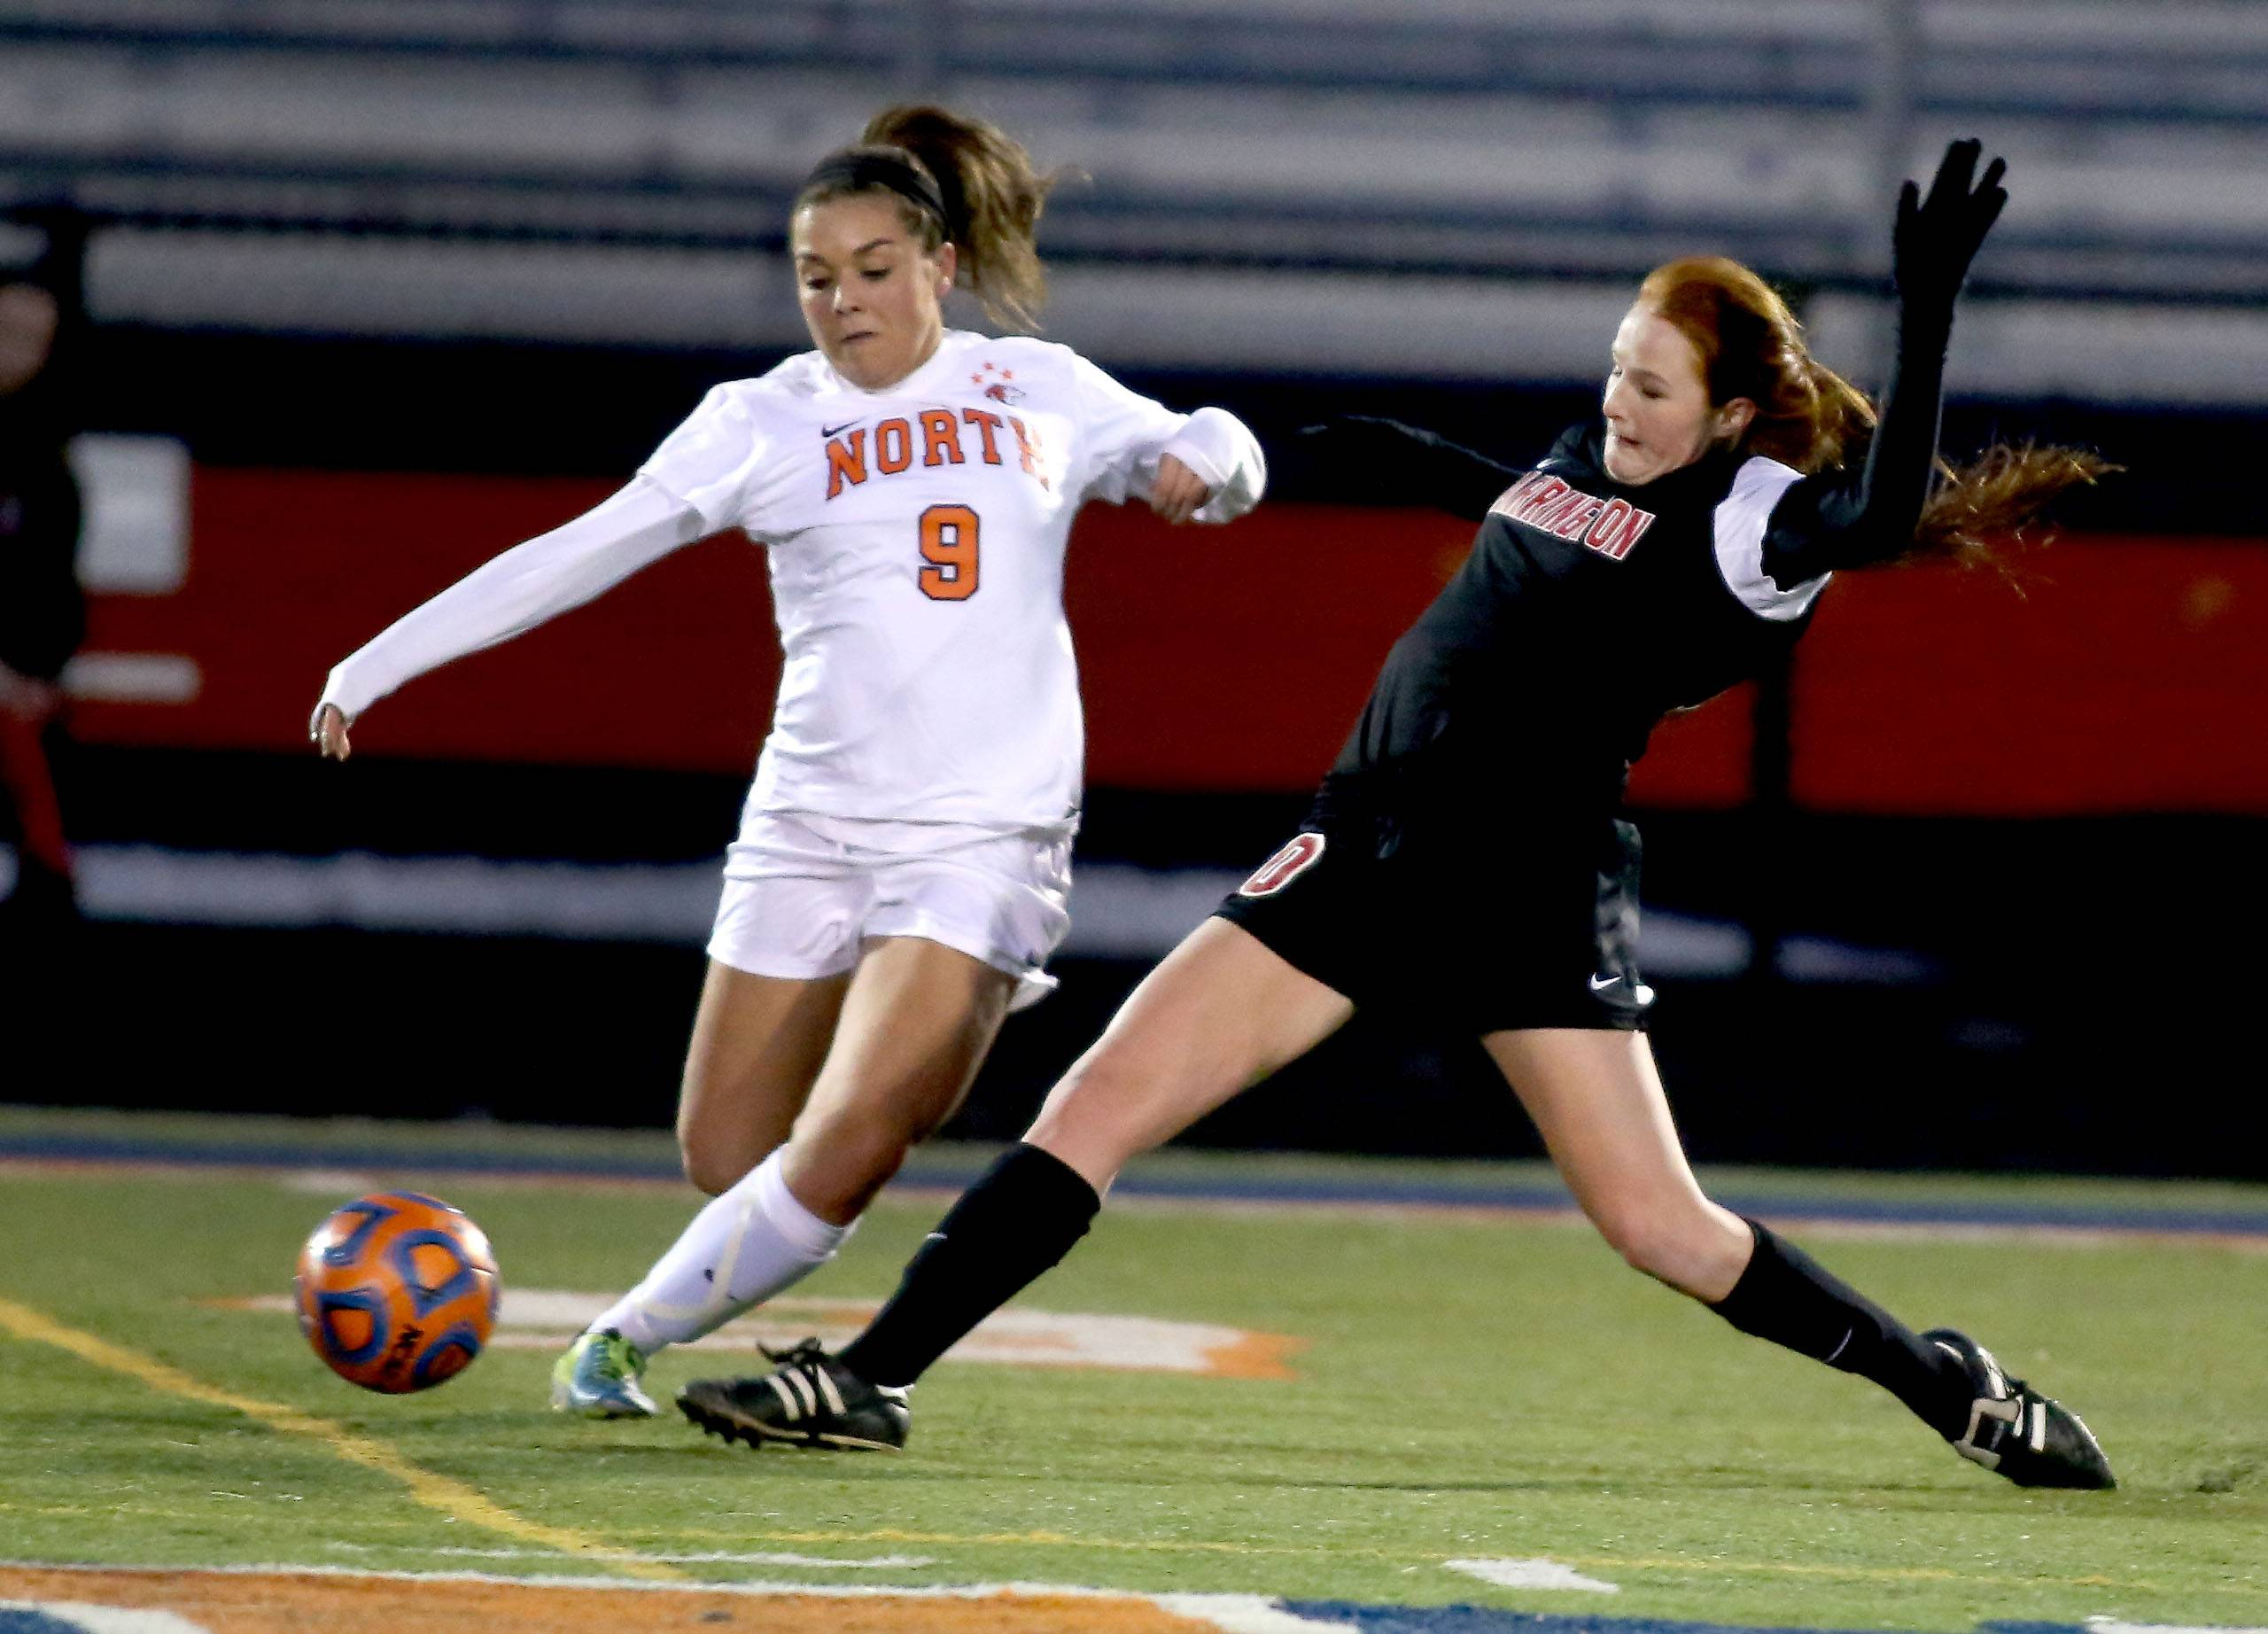 Bev Horne/bhorne@dailyherald.comNaperville North's Ashley Santos, left and Barrington's Carrie Madden, right in girls soccer action on Monday in Naperville.